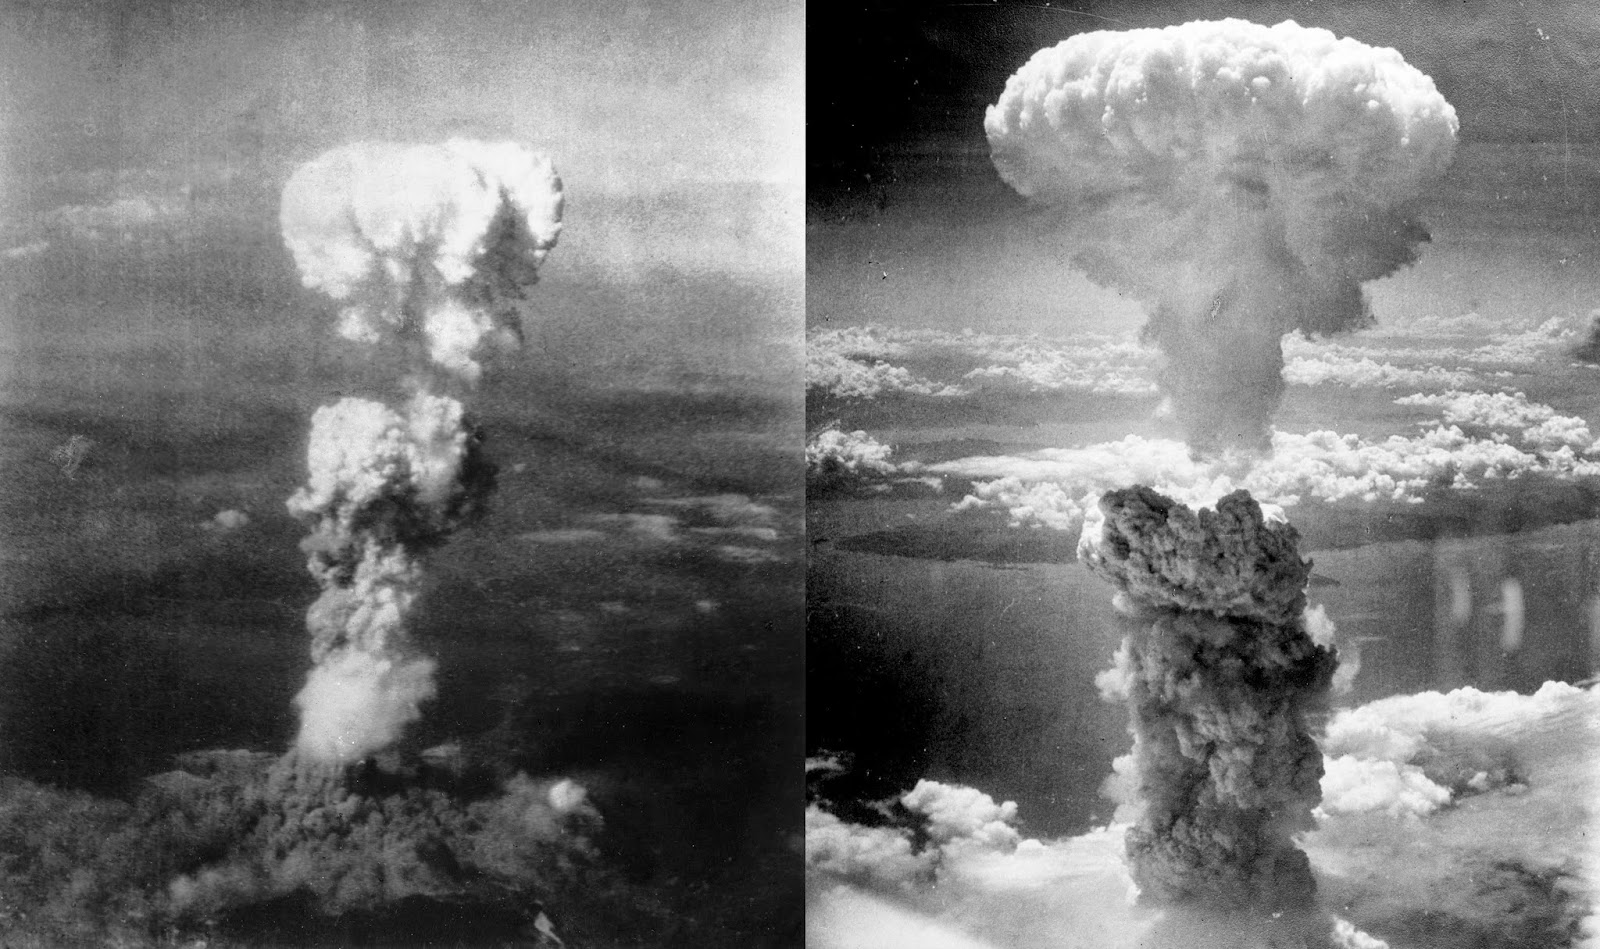 Hiroshima and Nagasaki Atomic Bombs